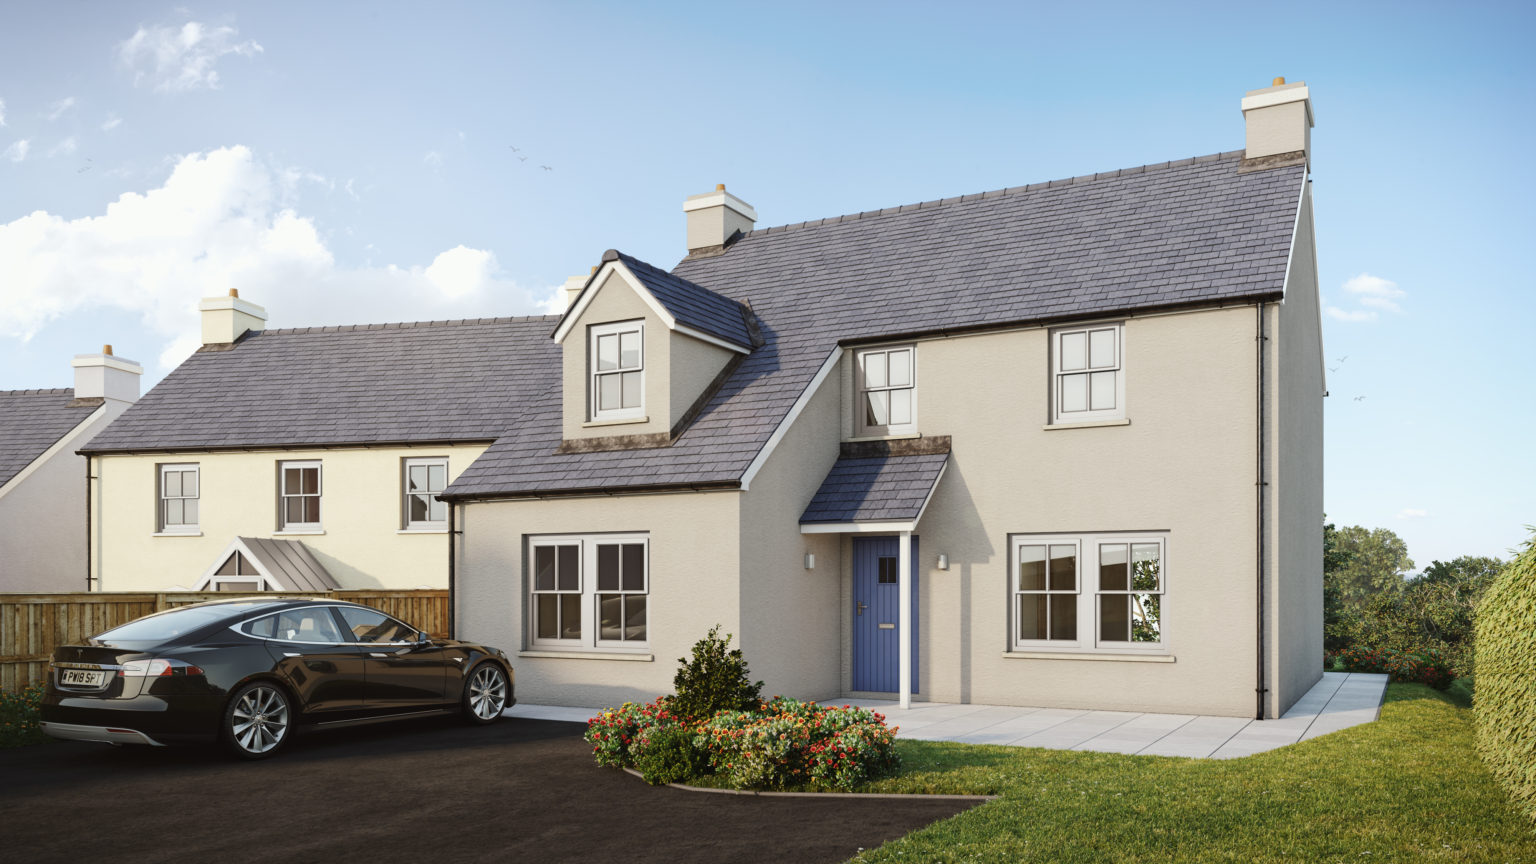 The Bowen - A thoughtfully designed, spacious four bedroom family home. The heart